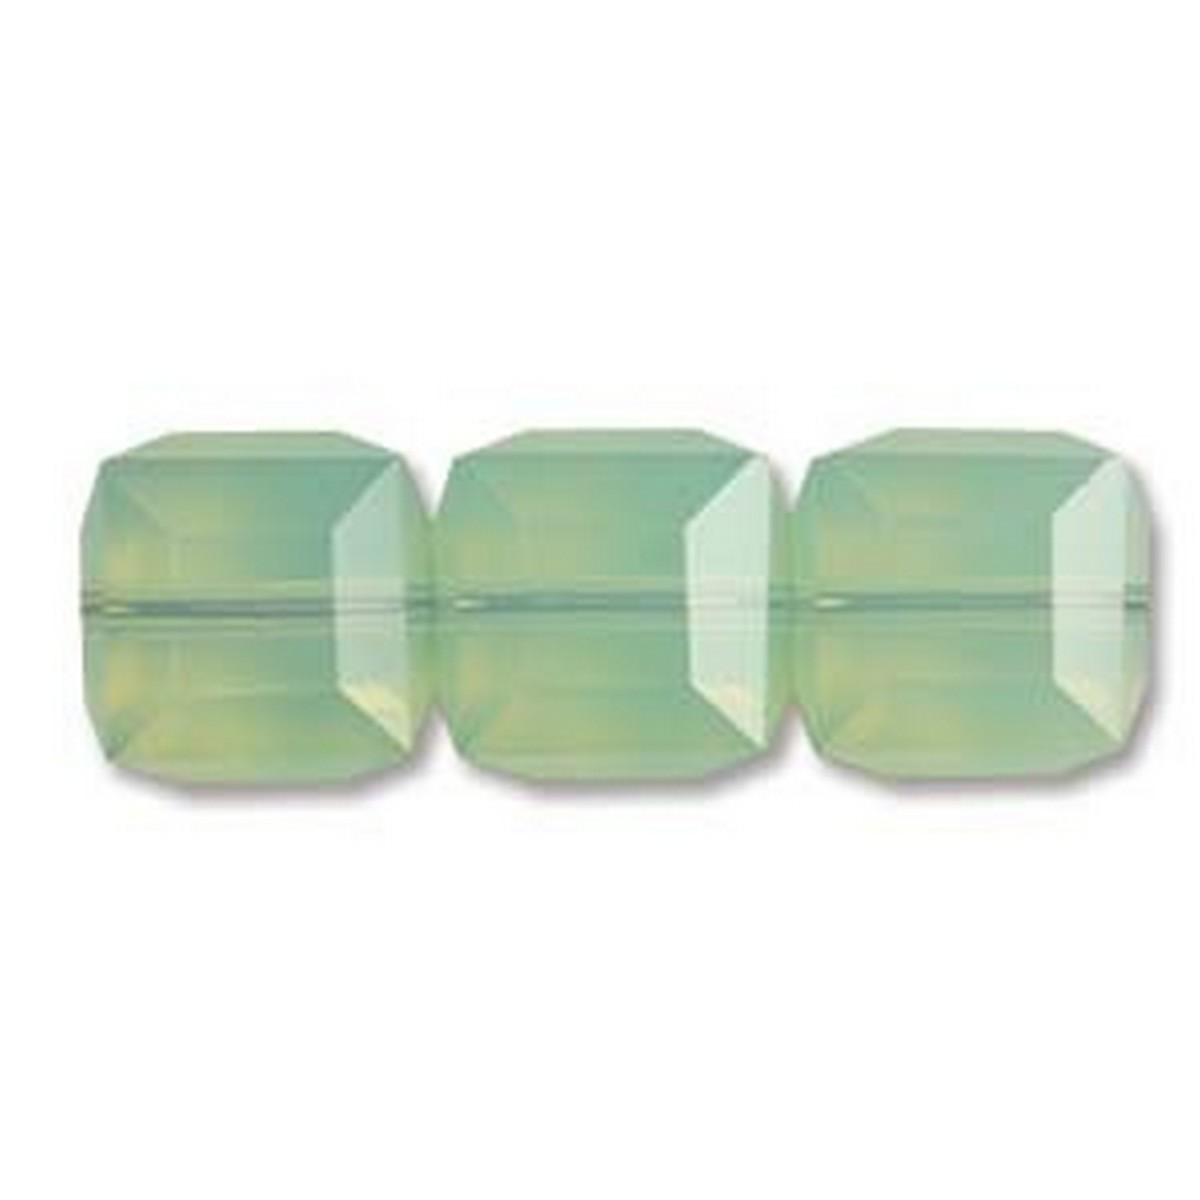 (H560108CRYSOOP) 8mm Crysolite Opal